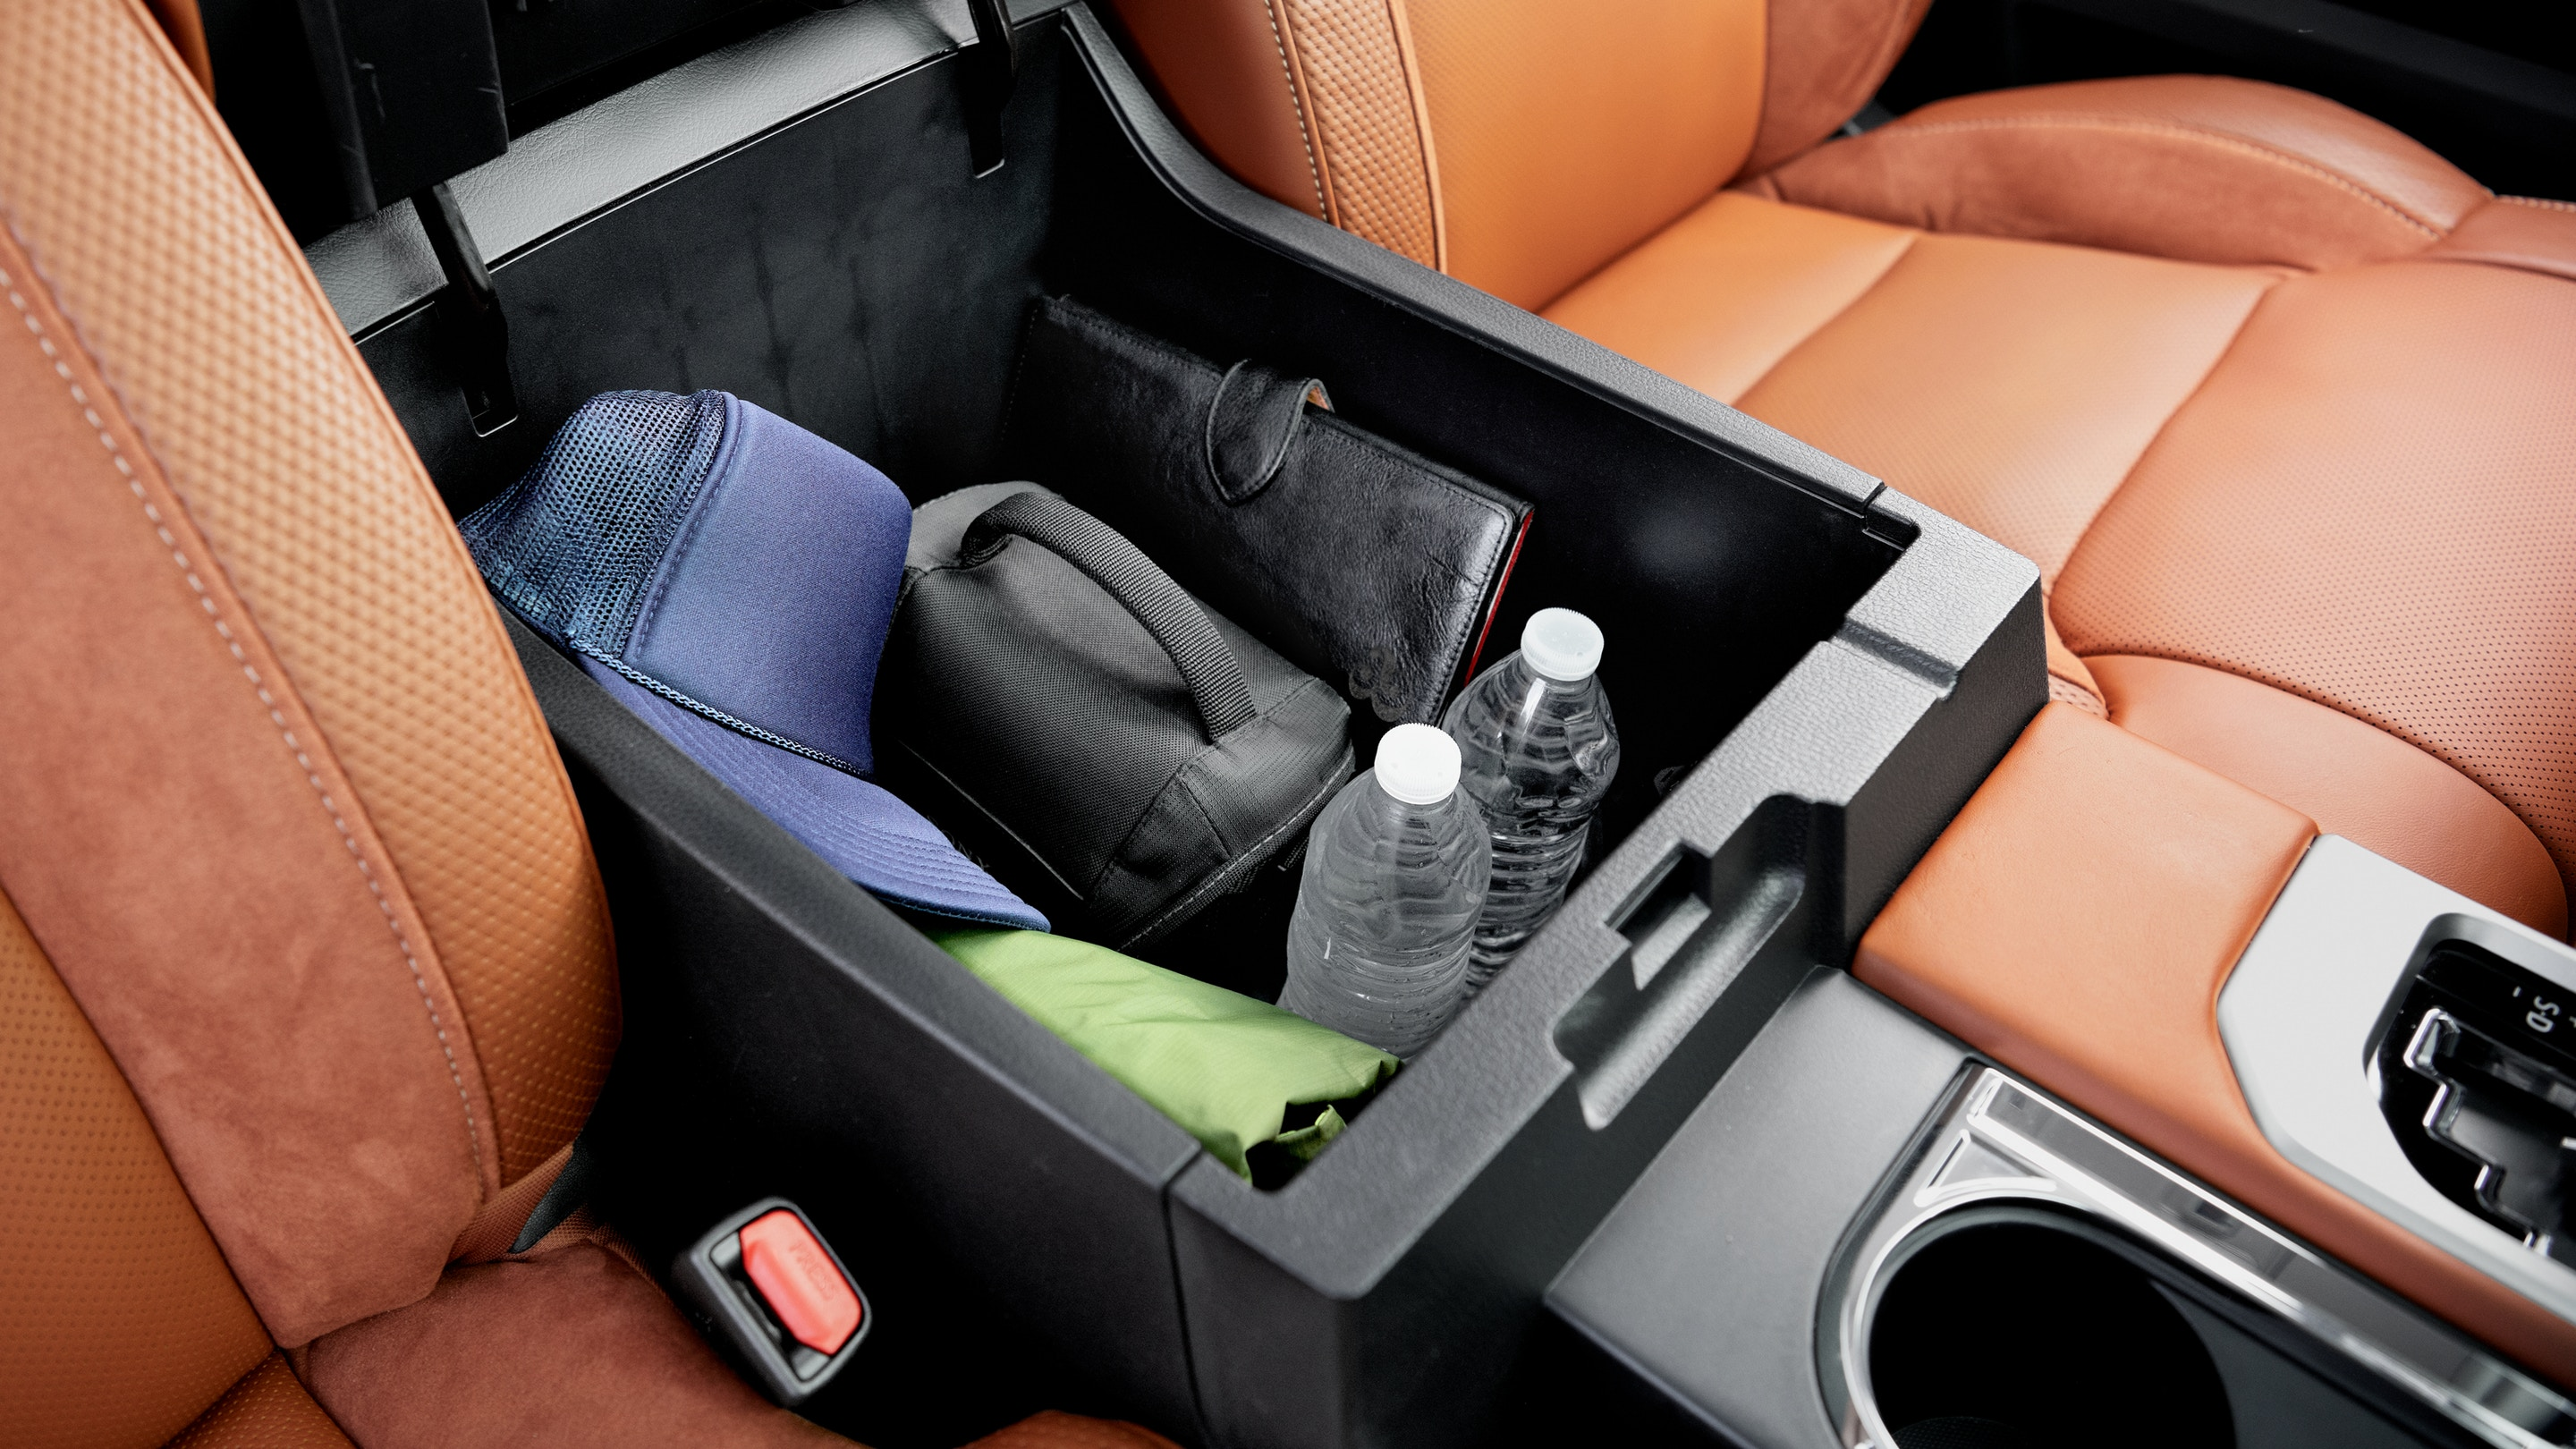 Center Console of the 2020 Tundra